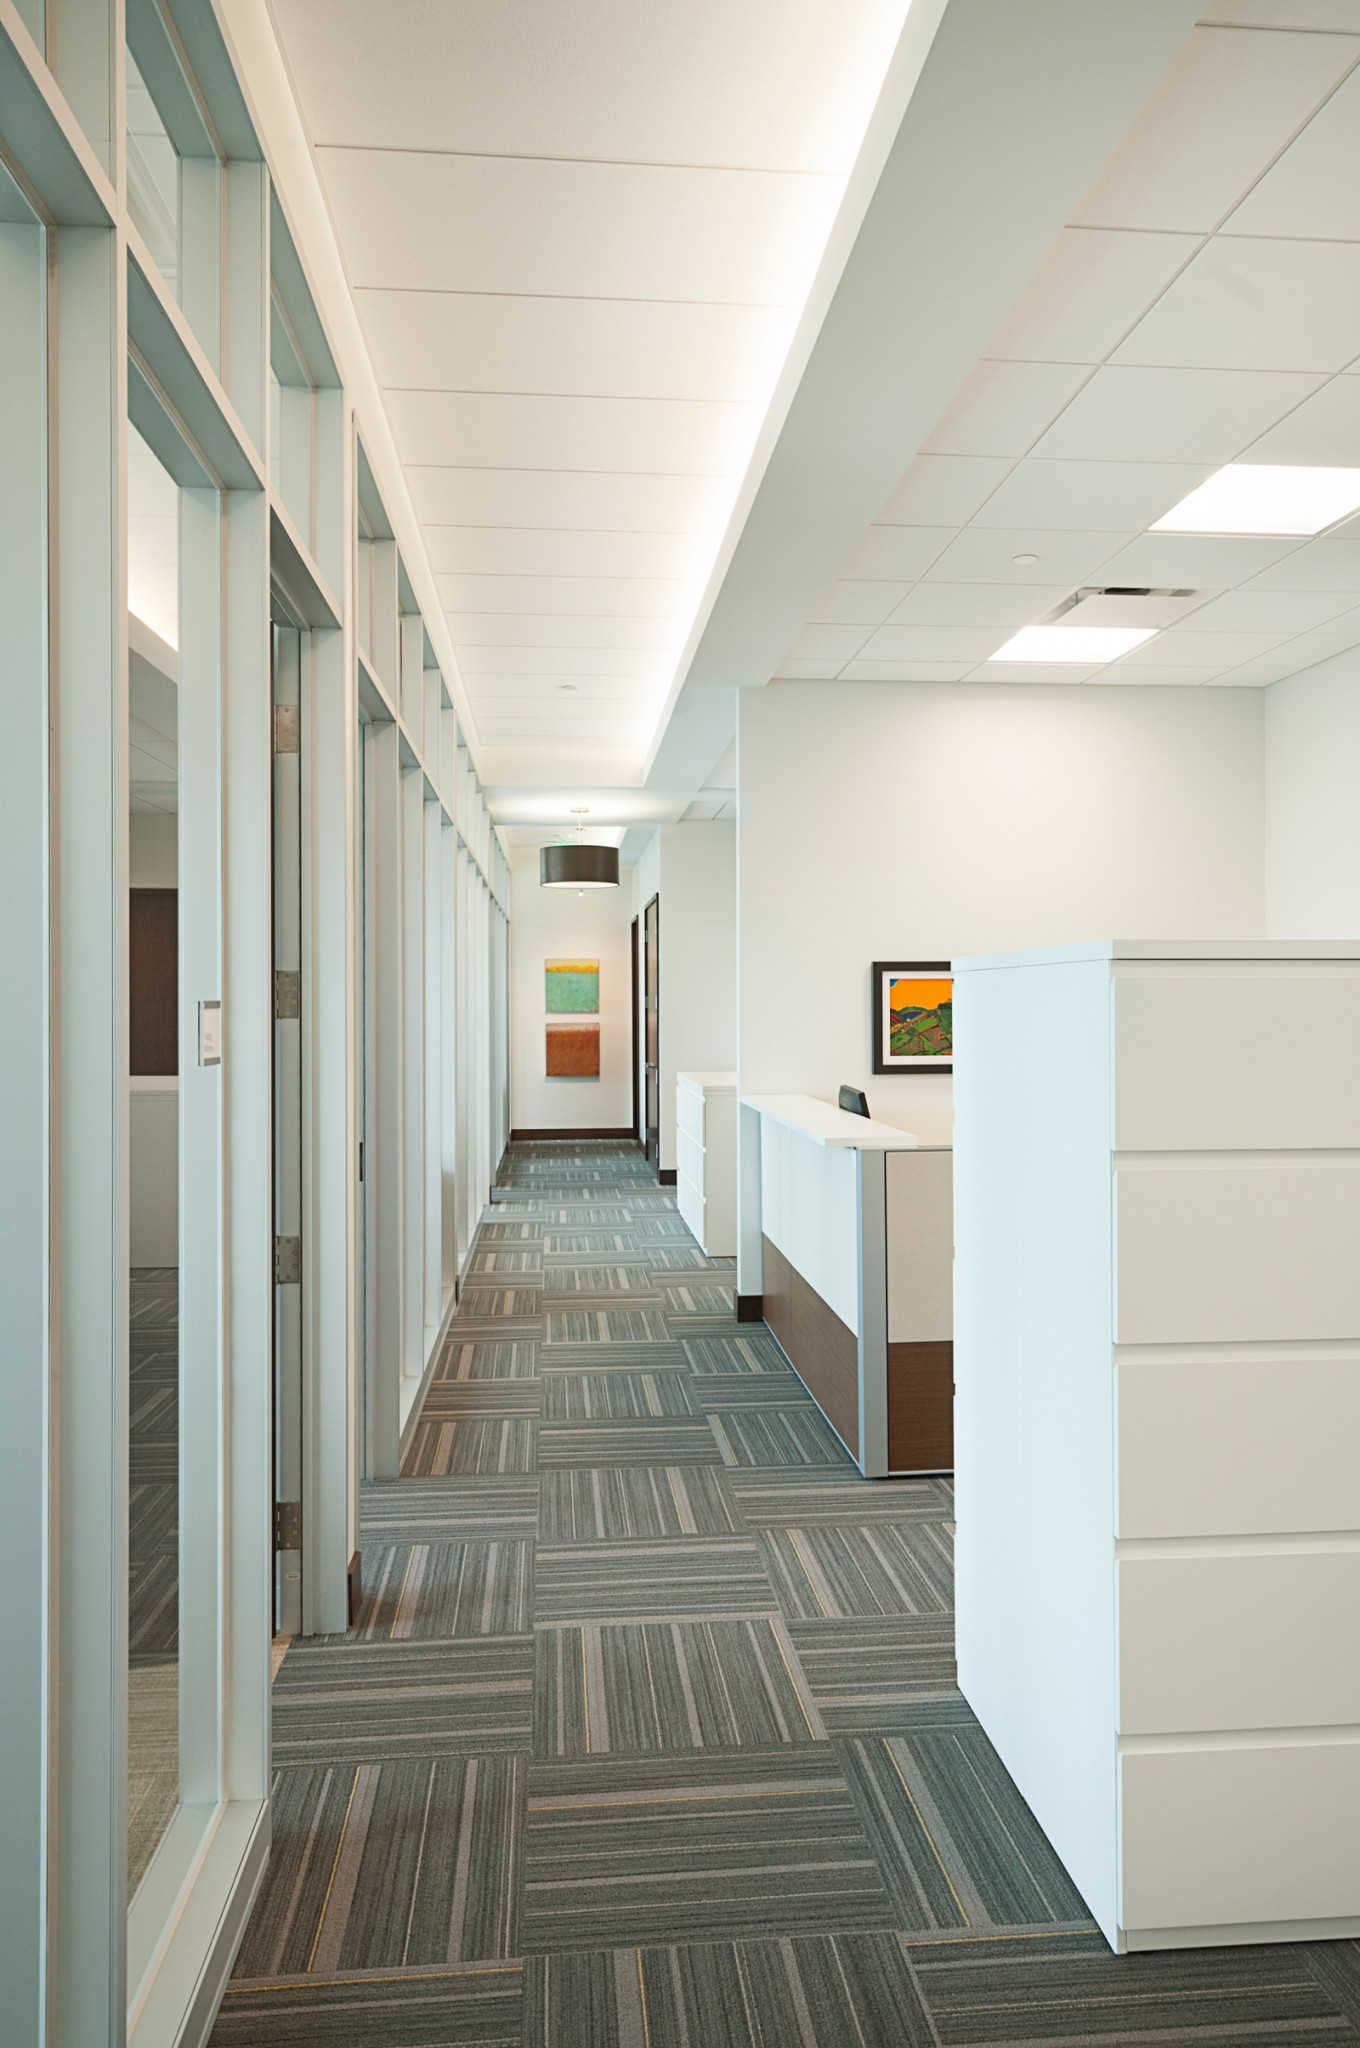 Typical circulation with glass office walls and indirect lighting.